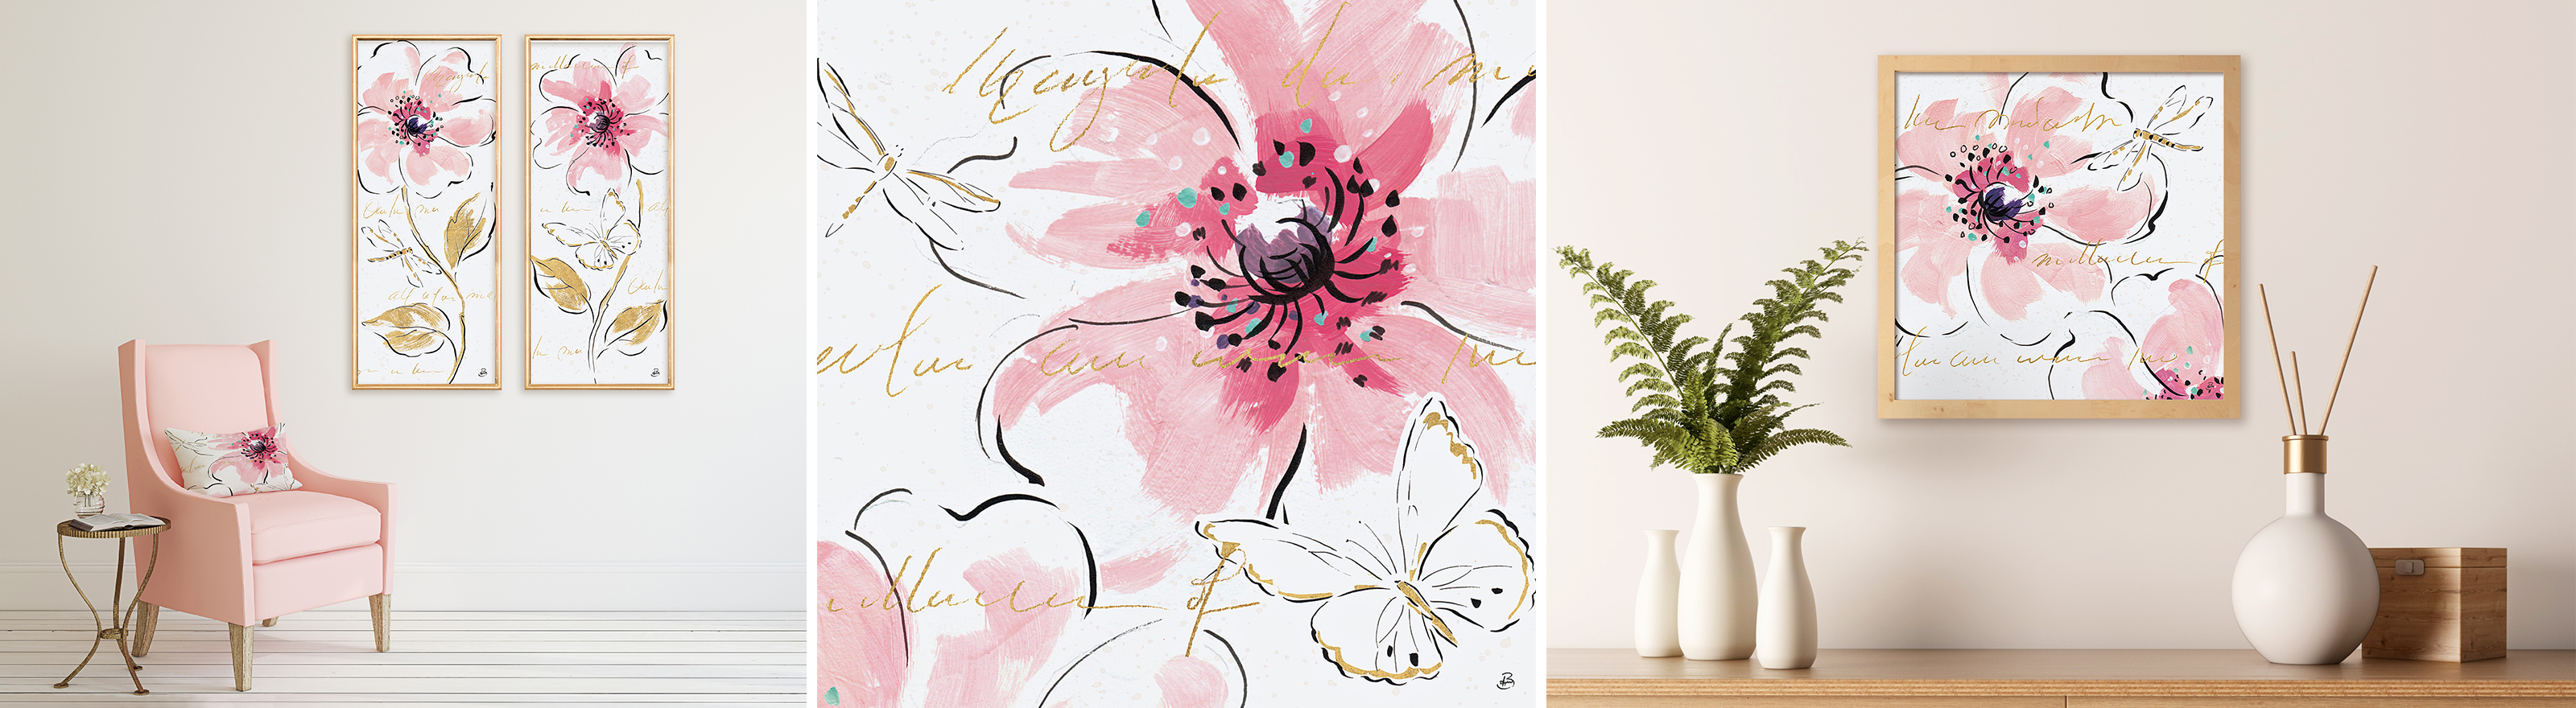 Pink Trend Home Decor